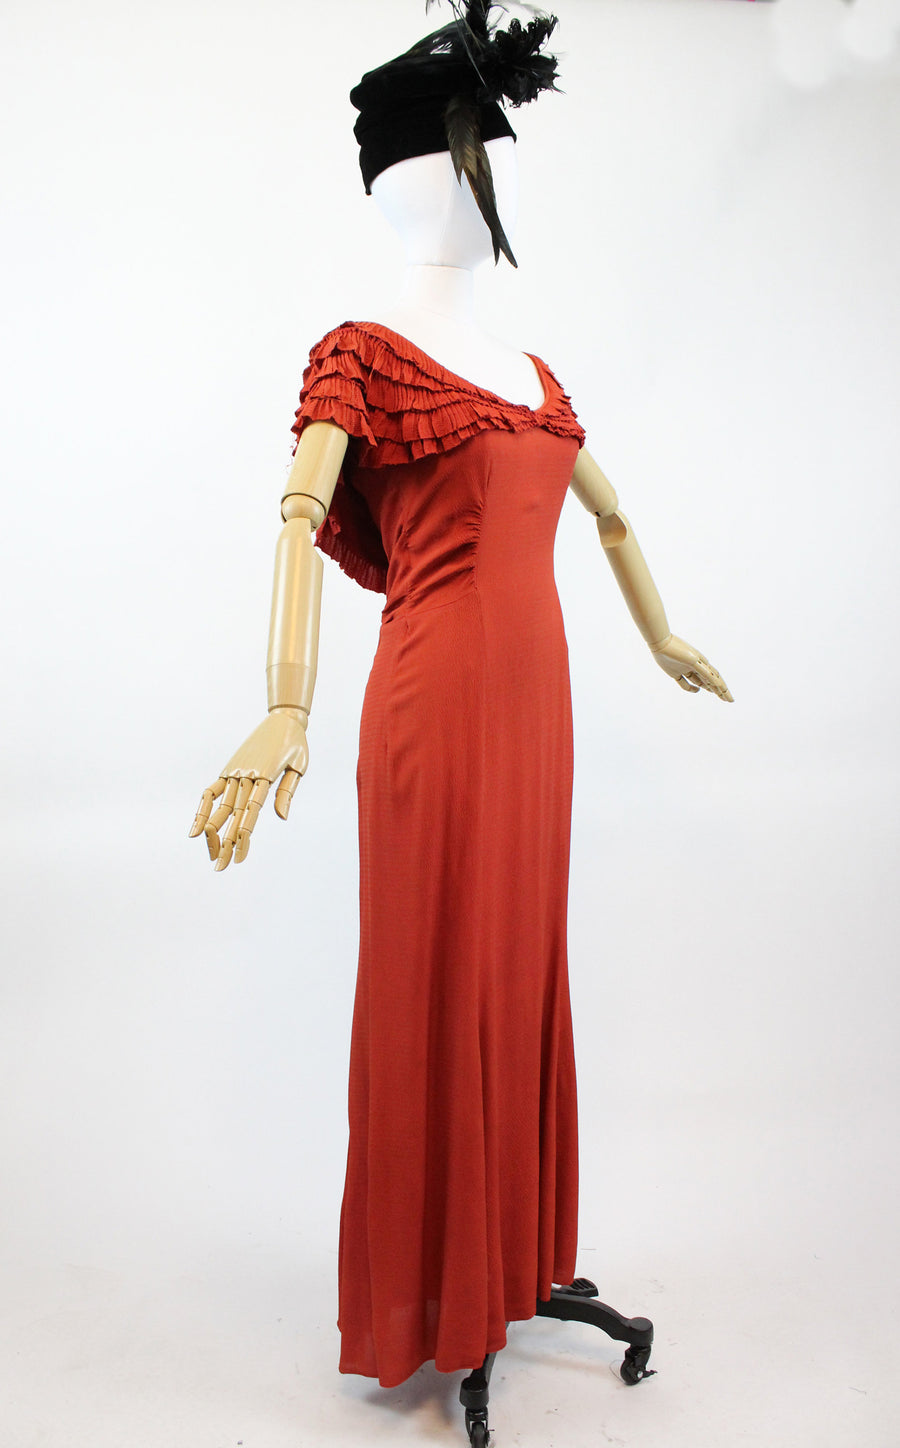 1930s rayon flamenco gown small | vintage cape dress | new in